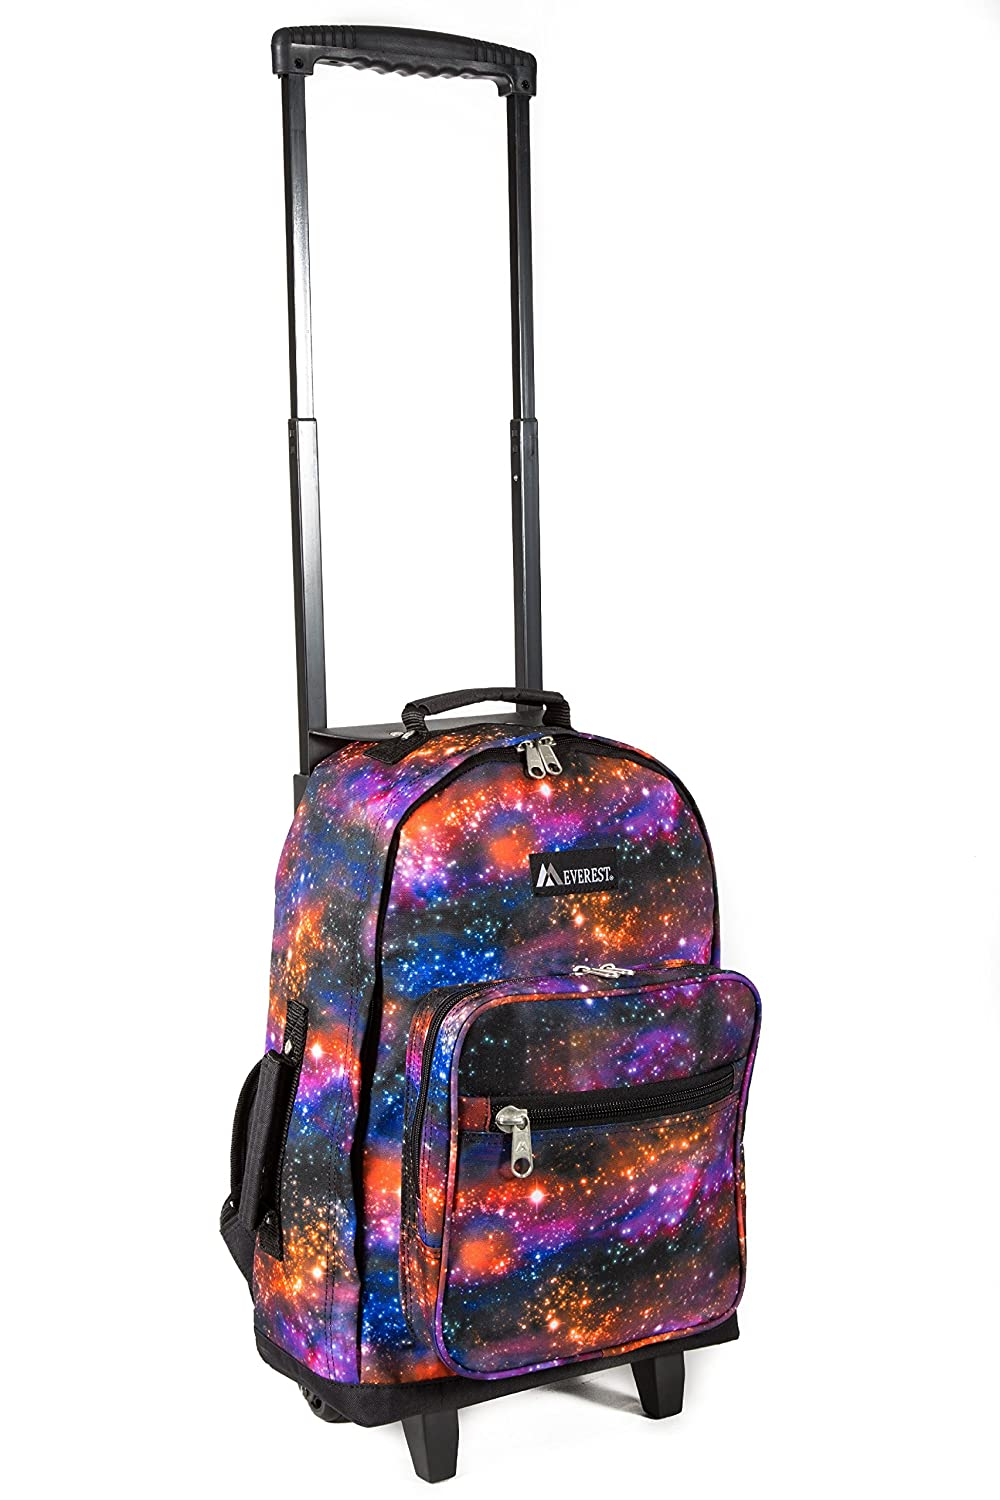 4024eb58a050 Everest Wheeled Pattern Backpack, Galaxy, One Size